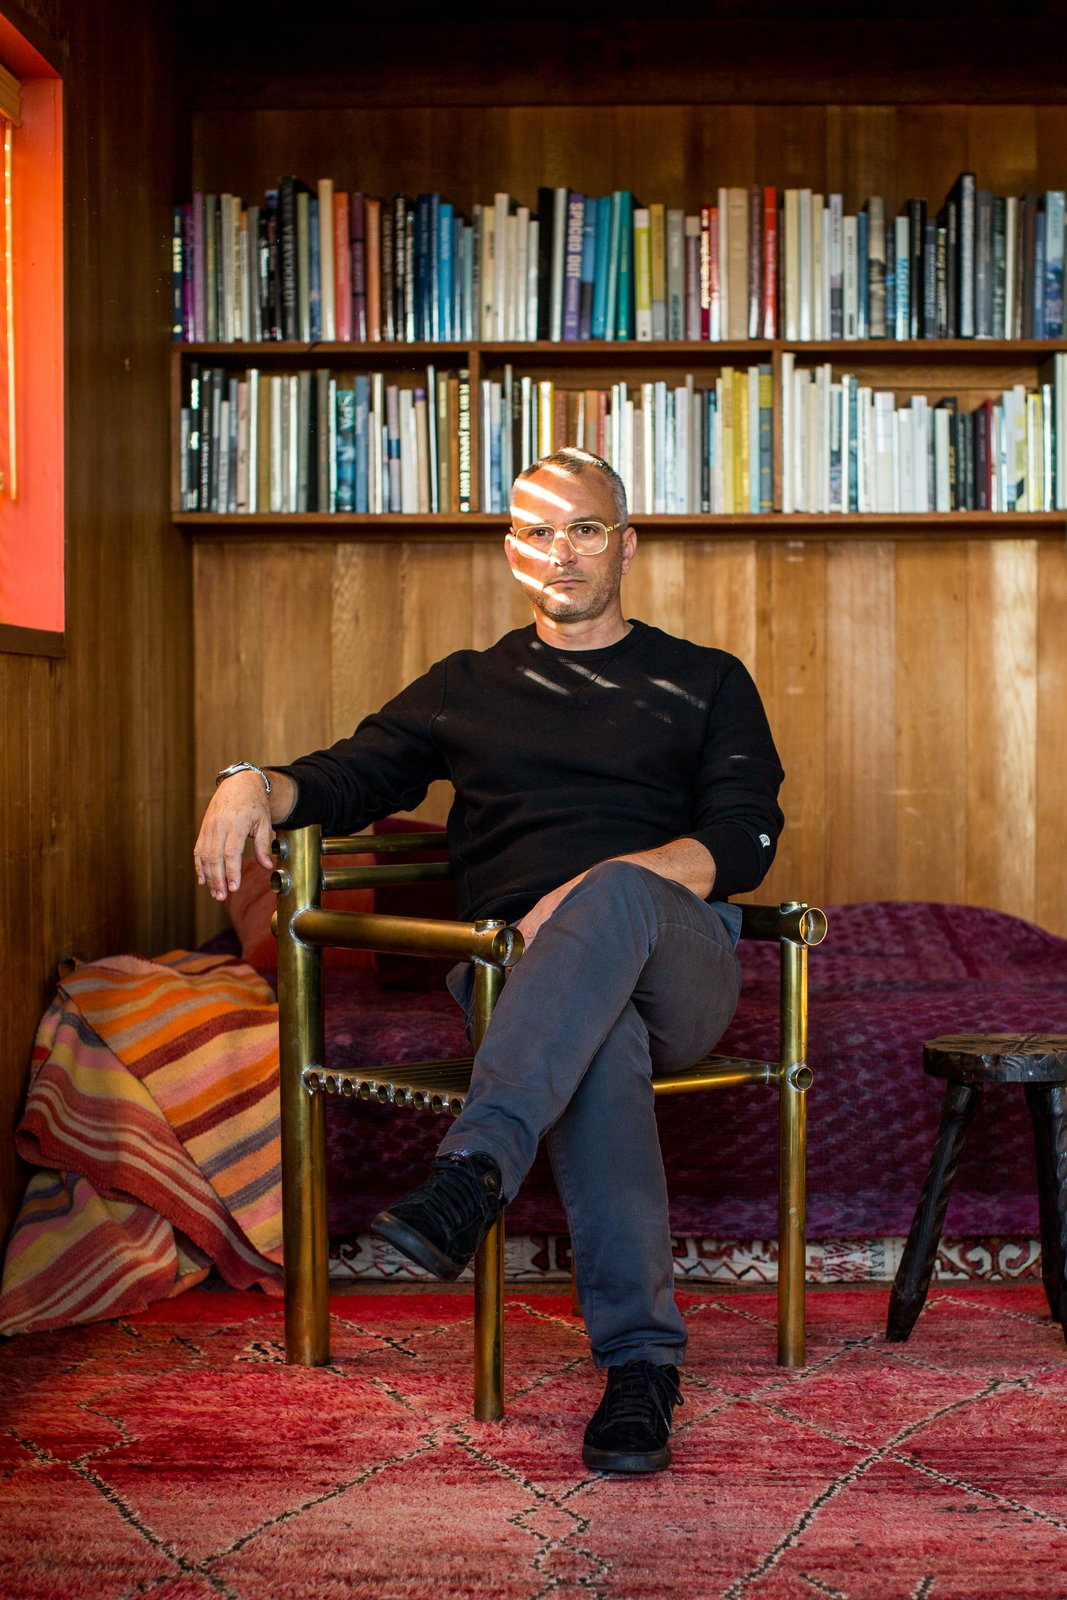 Charles de Lisle is shown here sitting in his Marin, California home. As a designer of furniture, lighting and objects, de Lisle mixes unexpected materials and mediums to create useful objects that are full of texture and character.  Photo 1 of 12 in Creatives of the Bay Area Series: Charles de Lisle